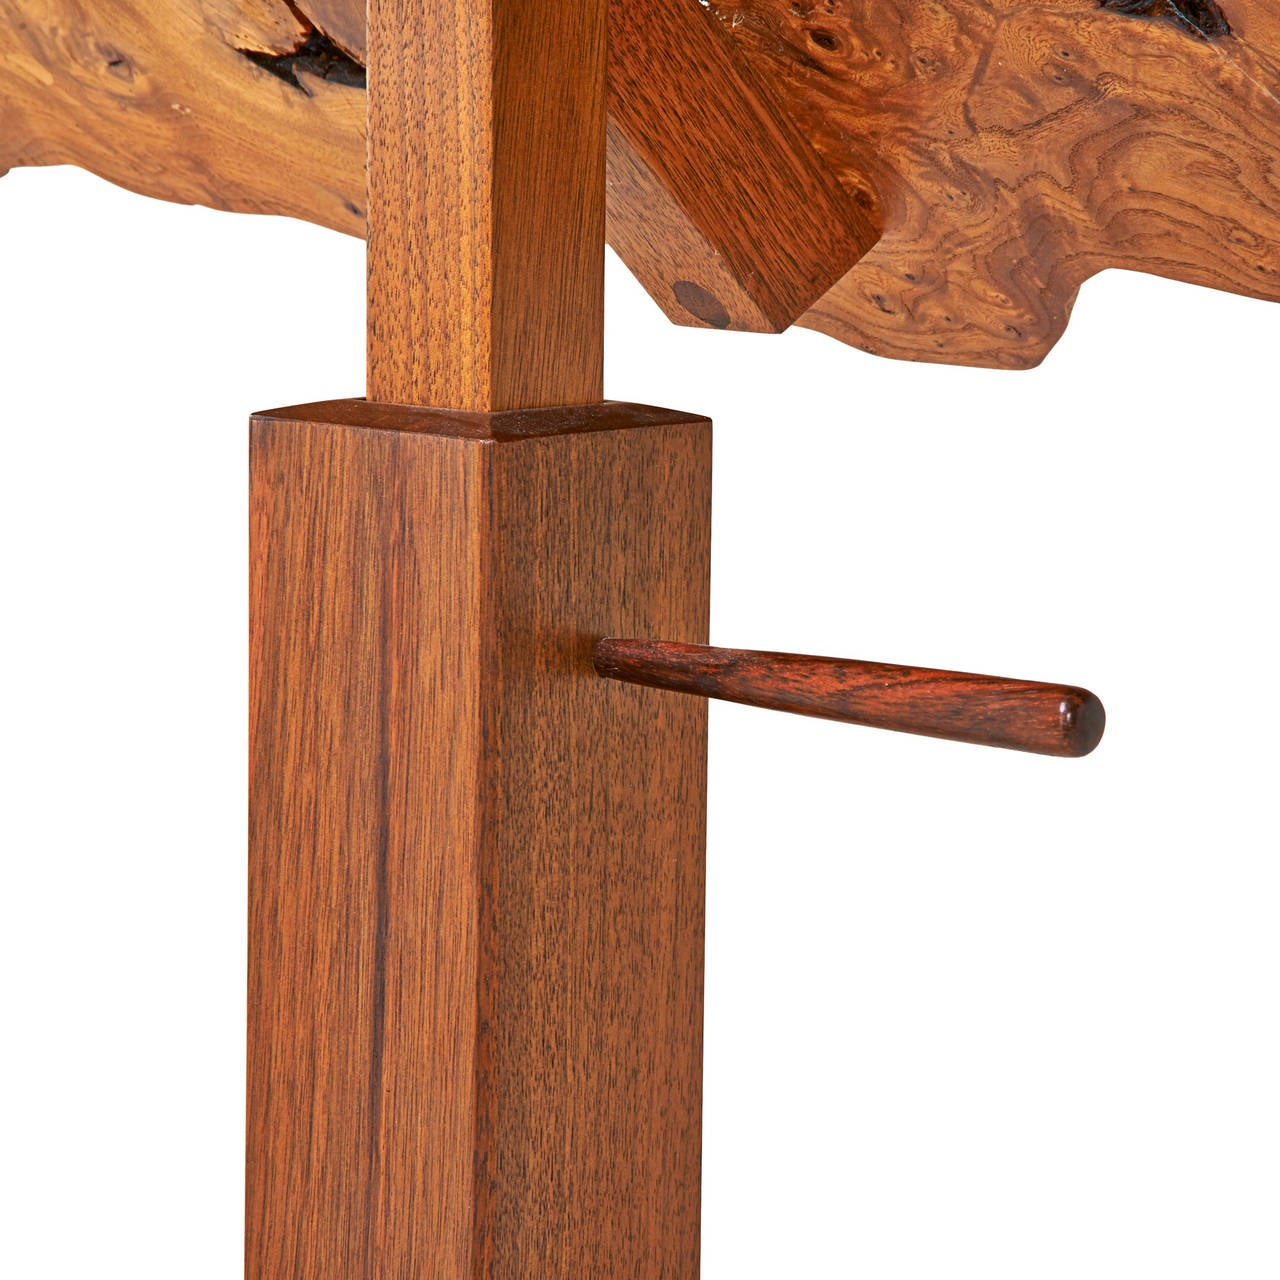 Adjustable music stand made from walnut and Carpathian elm burl. The stand is unmarked and has been documented by a copy of the original drawing.